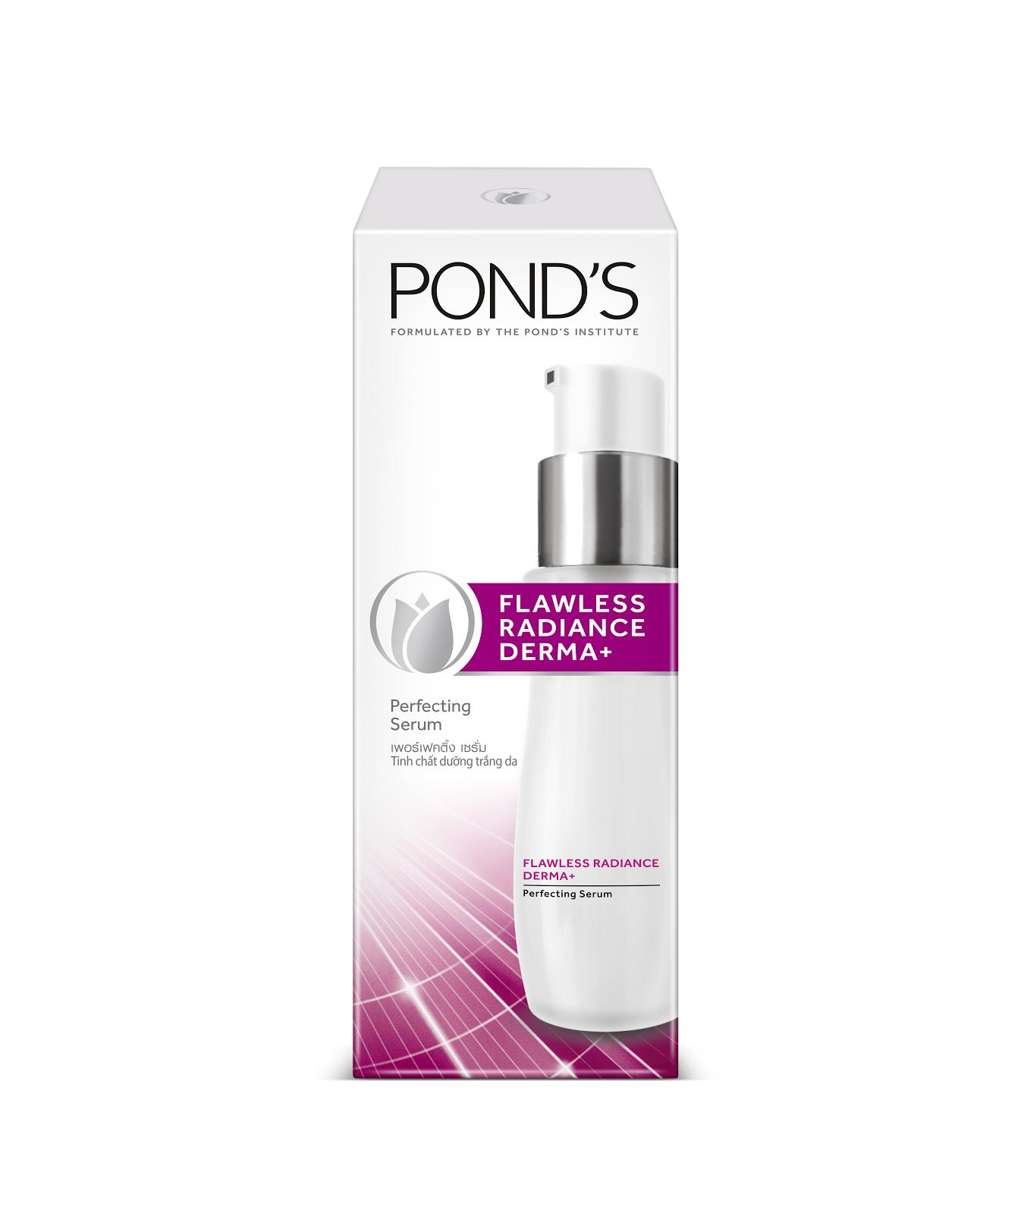 New Pond's Flawless Radiance Derma+ Perfecting Serum